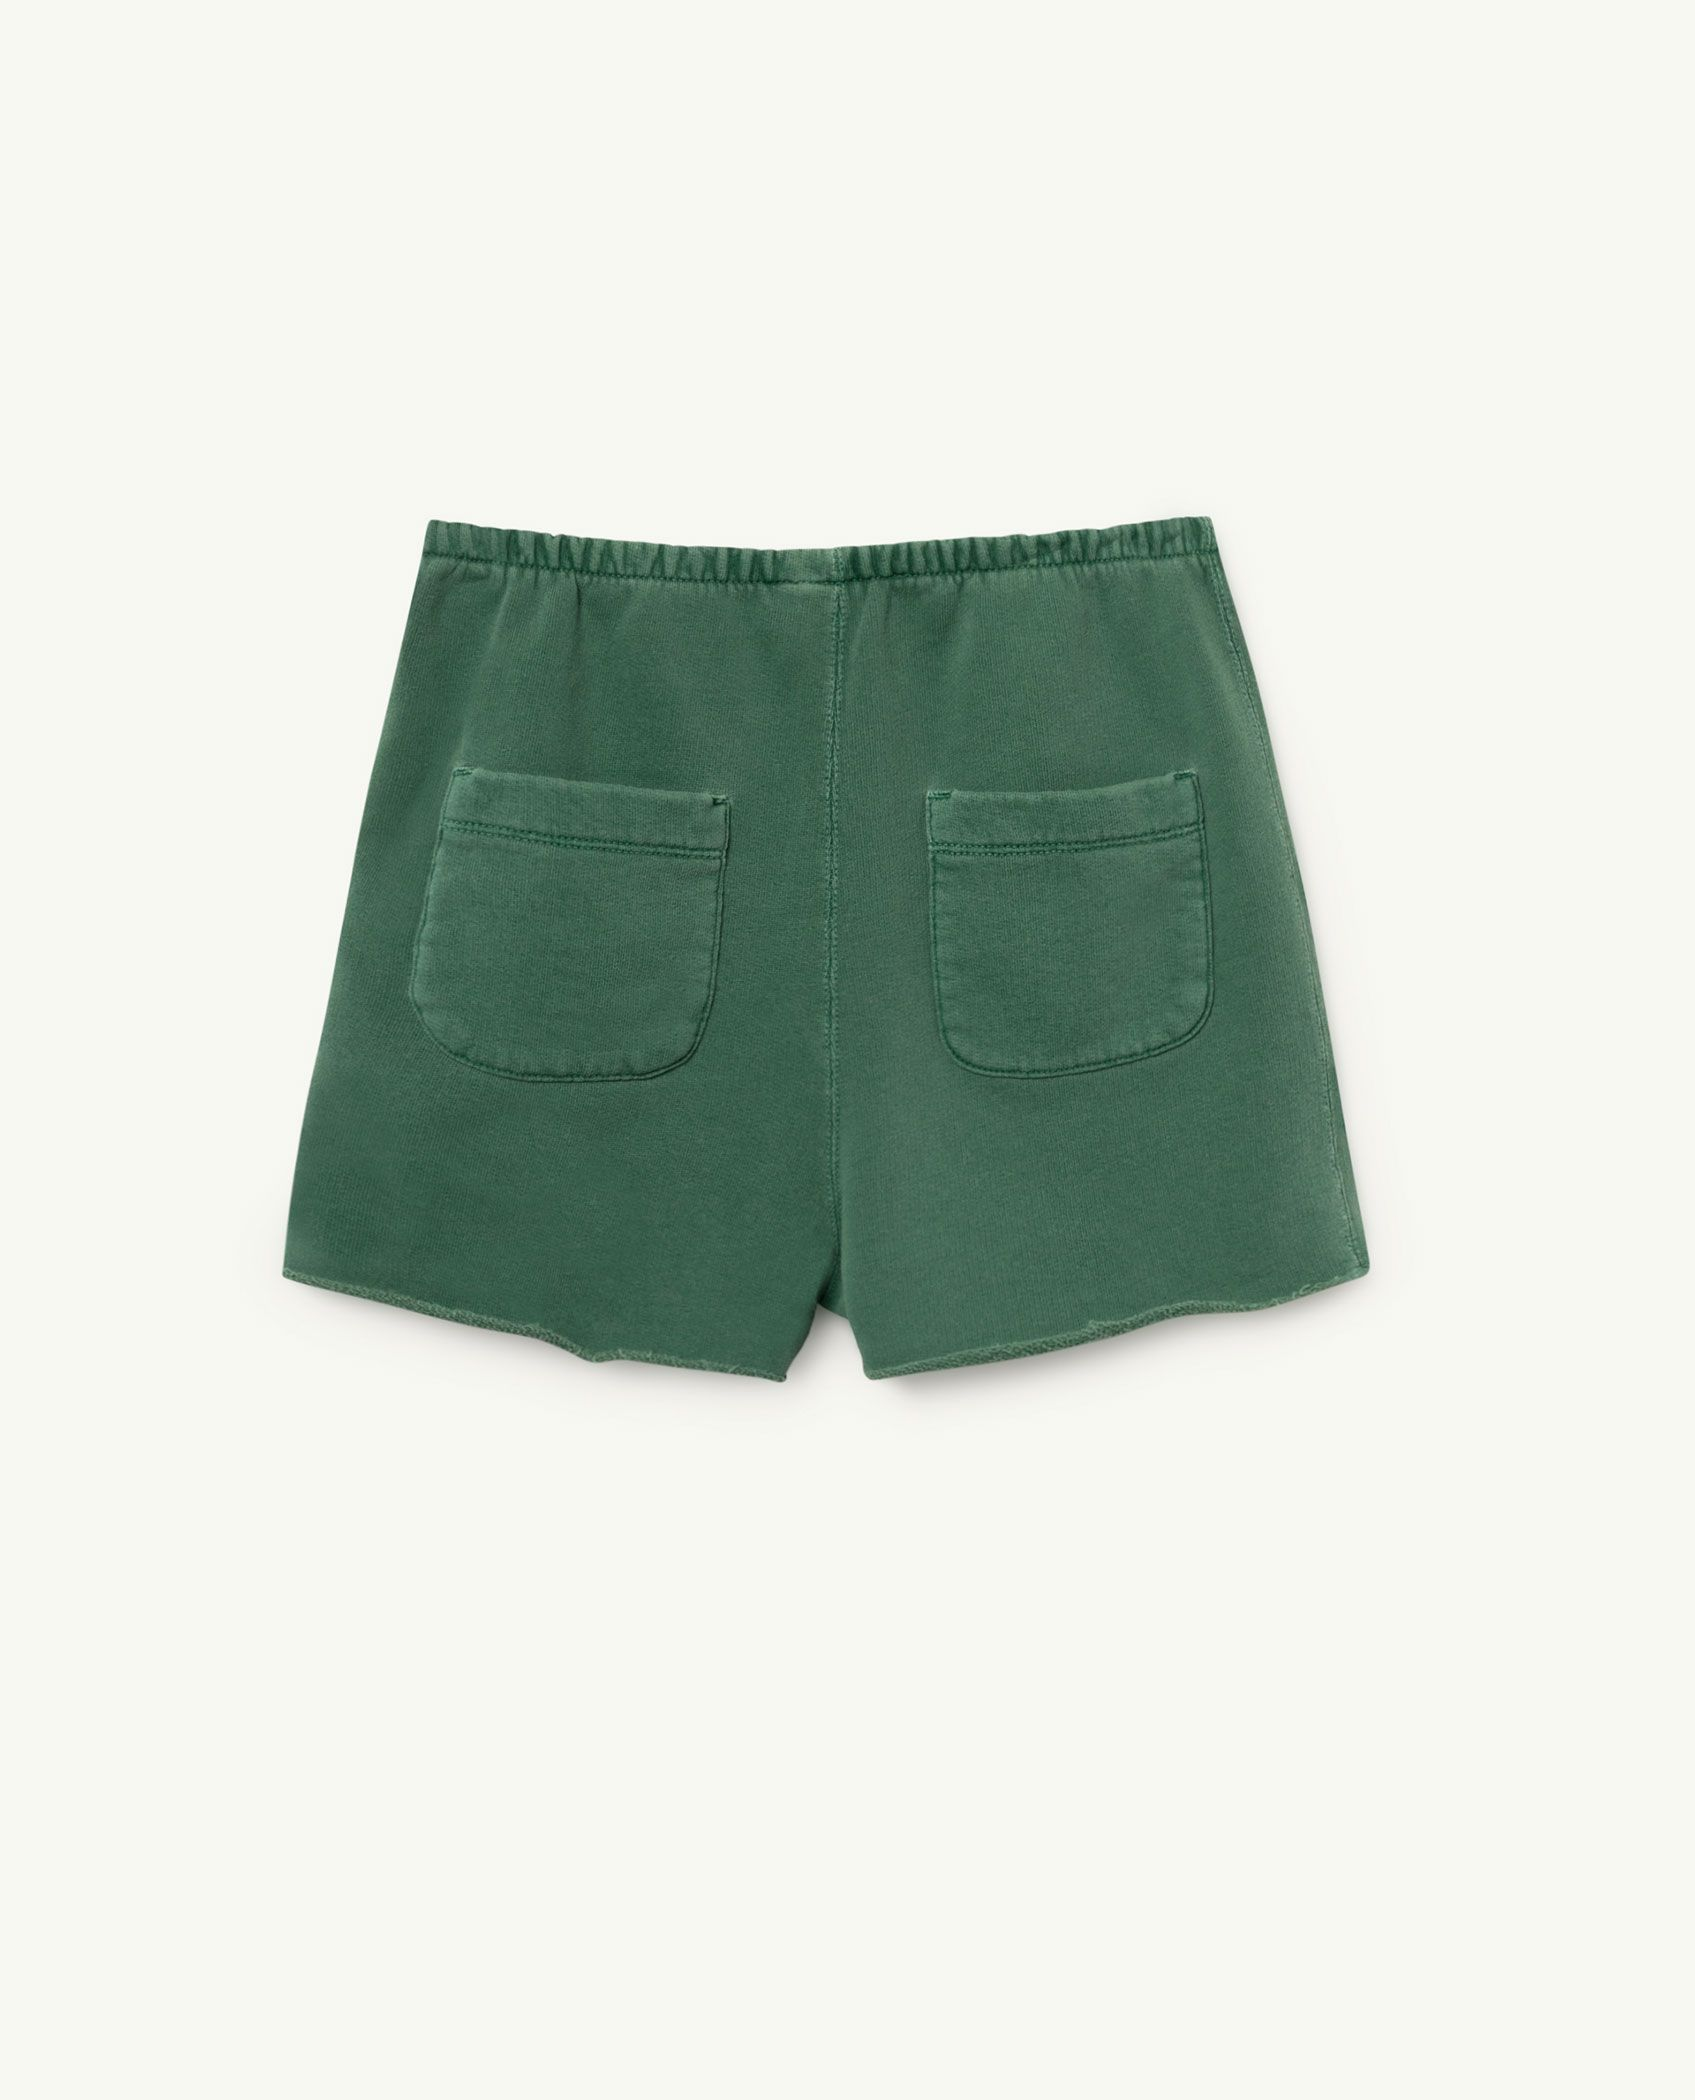 Green Hedgehog Shorts img-2